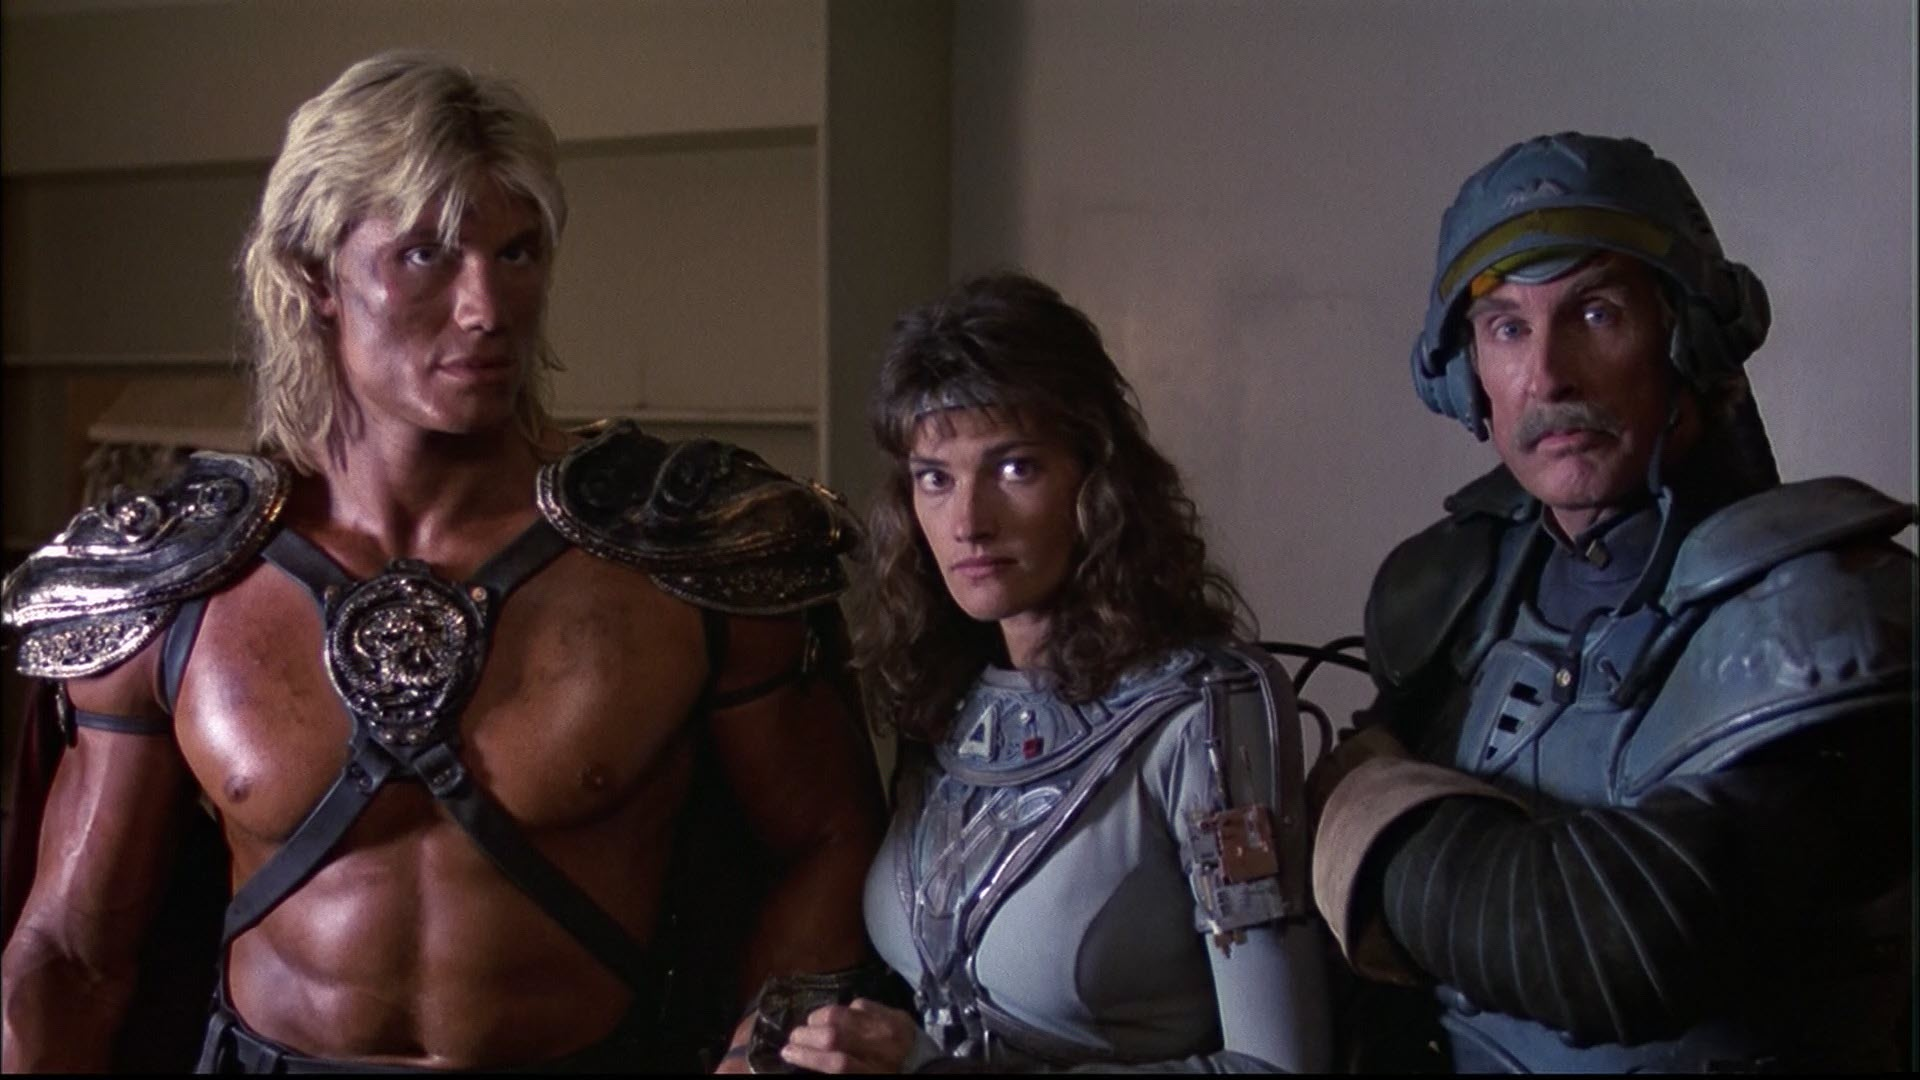 Dolph Lundgren in Masters of the Universe.